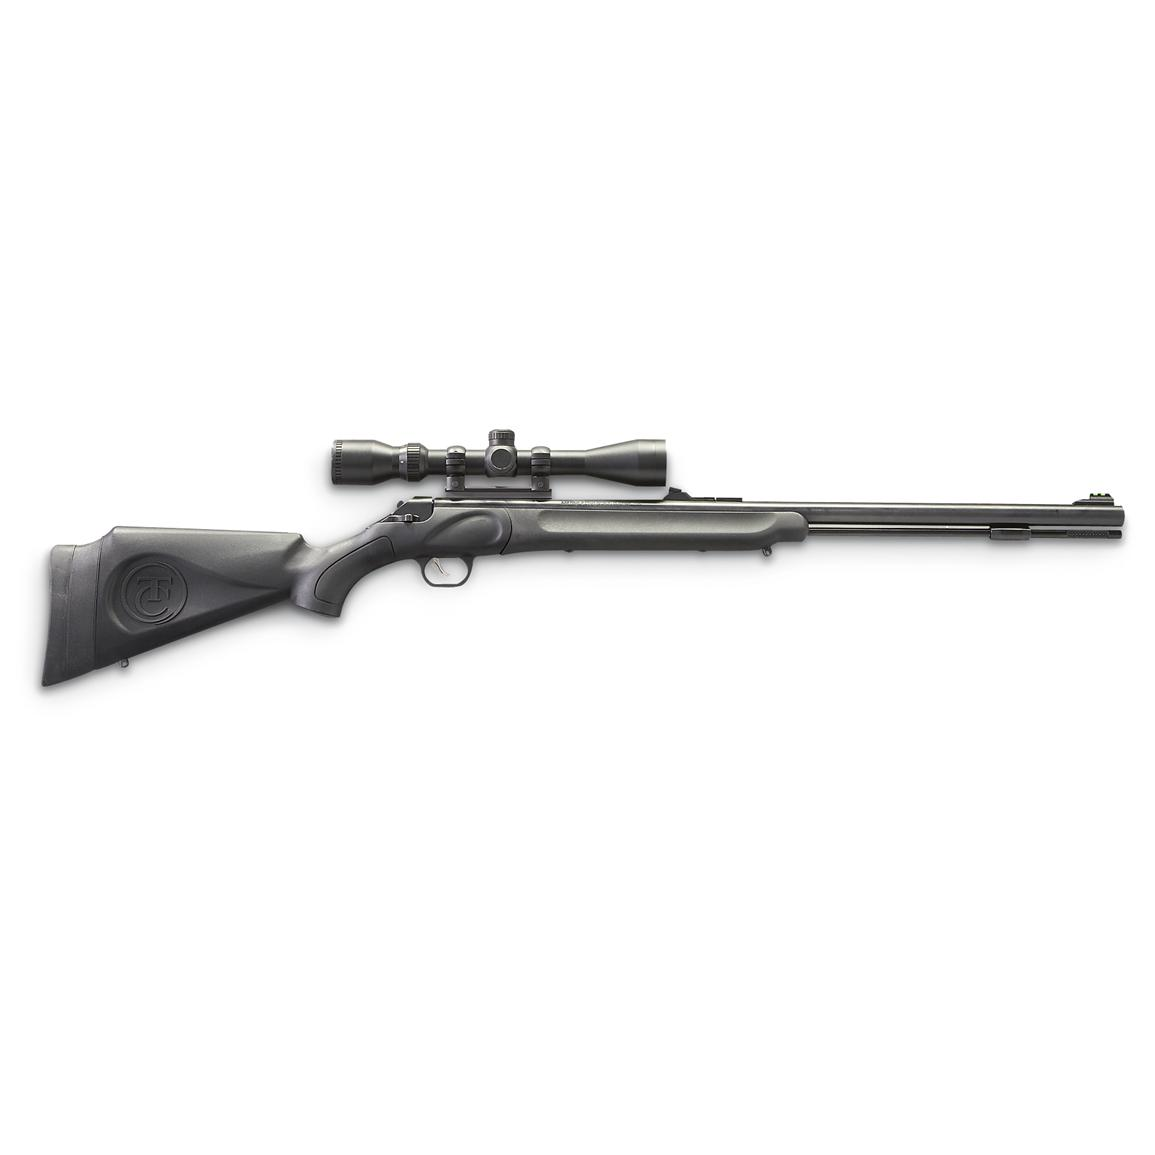 Thompson / Center Impact Blued Barrel .50 cal. Black Powder Rifle with 3-9x40 mm Scope